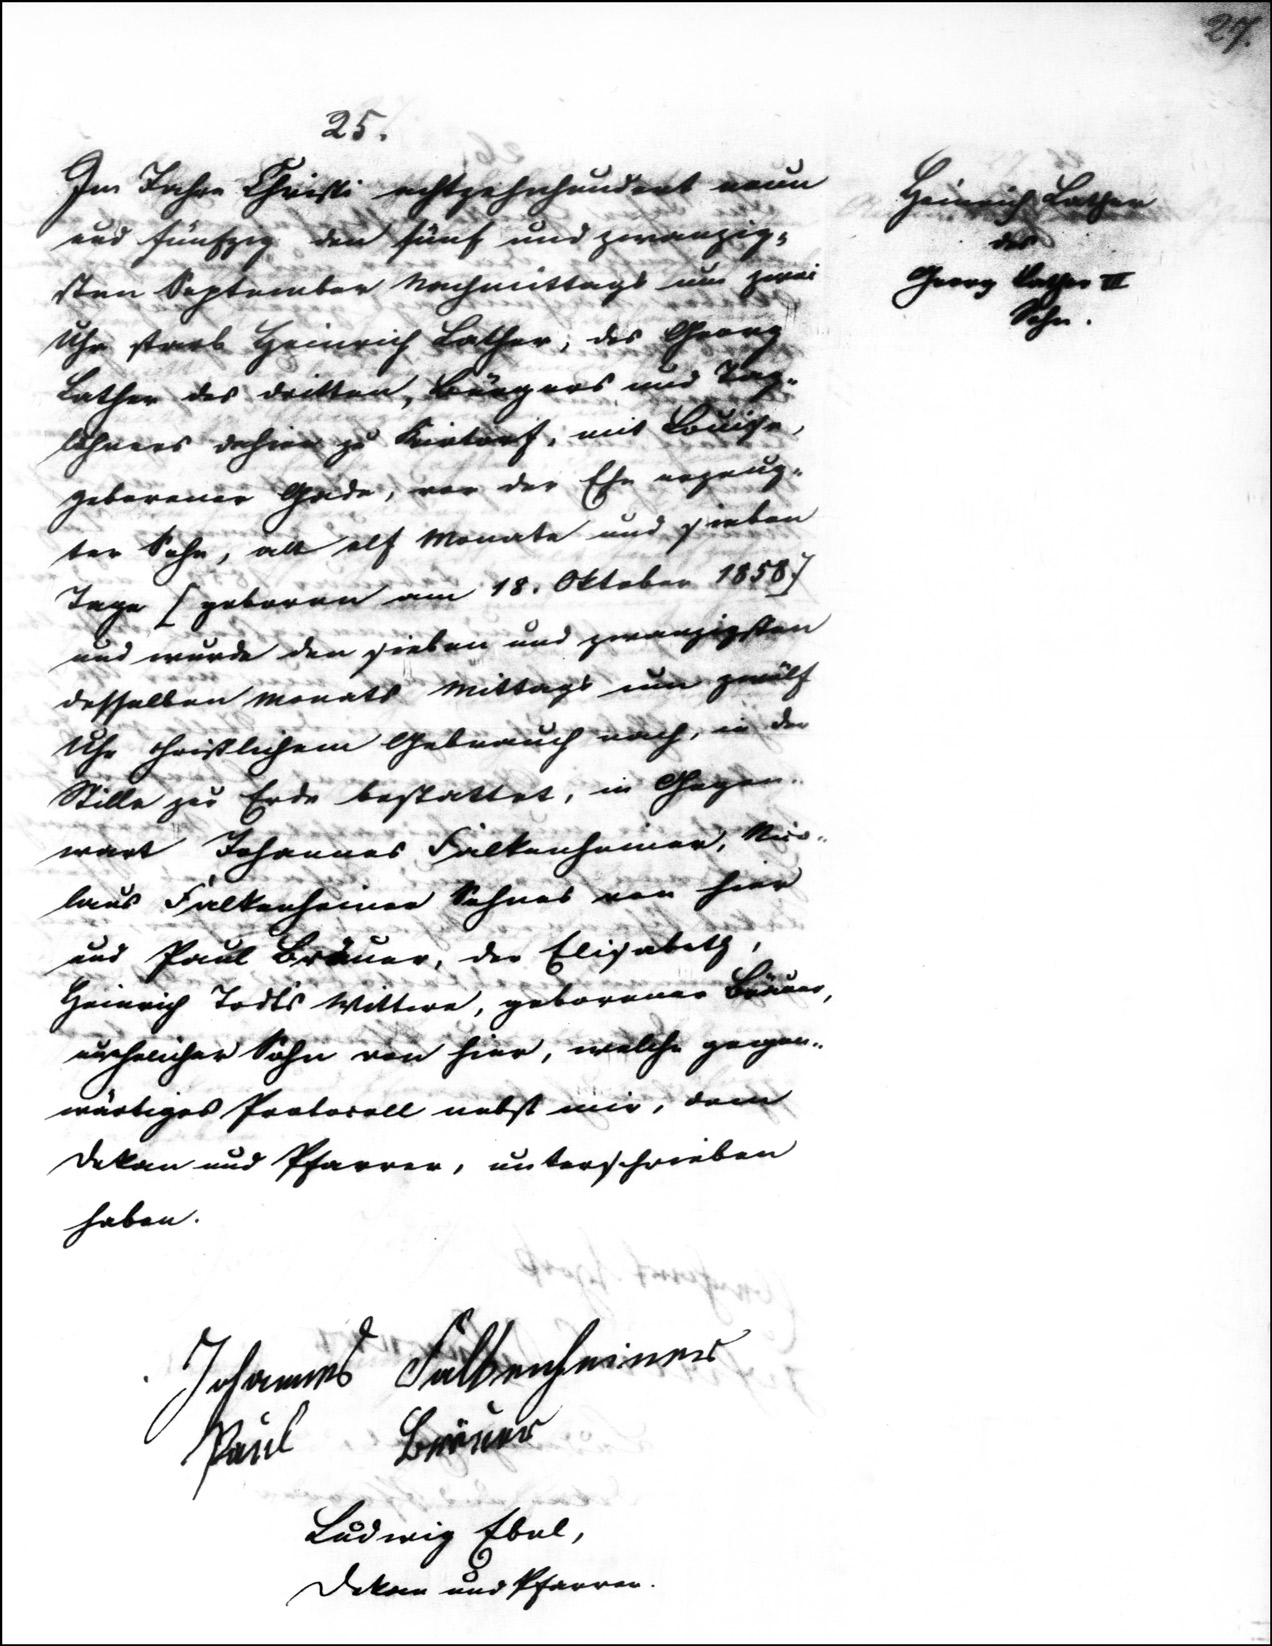 The Death and Burial Record of Heinrich Lather - 1859